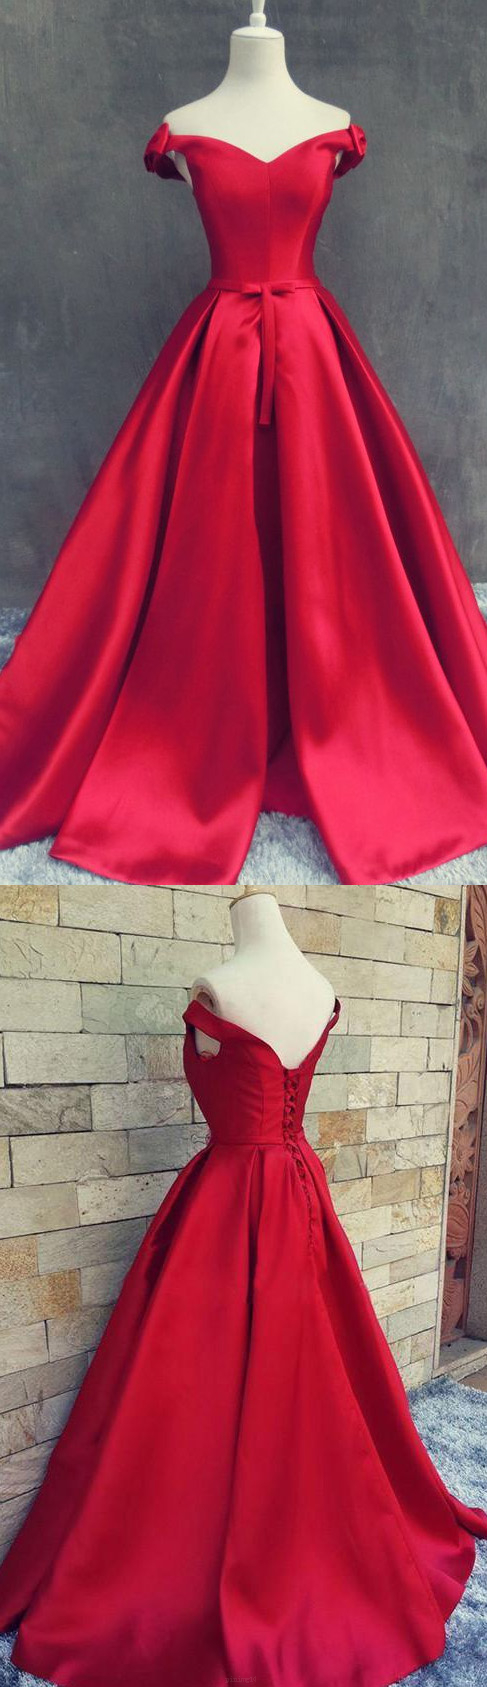 Hot sale short sleeve evening prom dress long red evening dresses